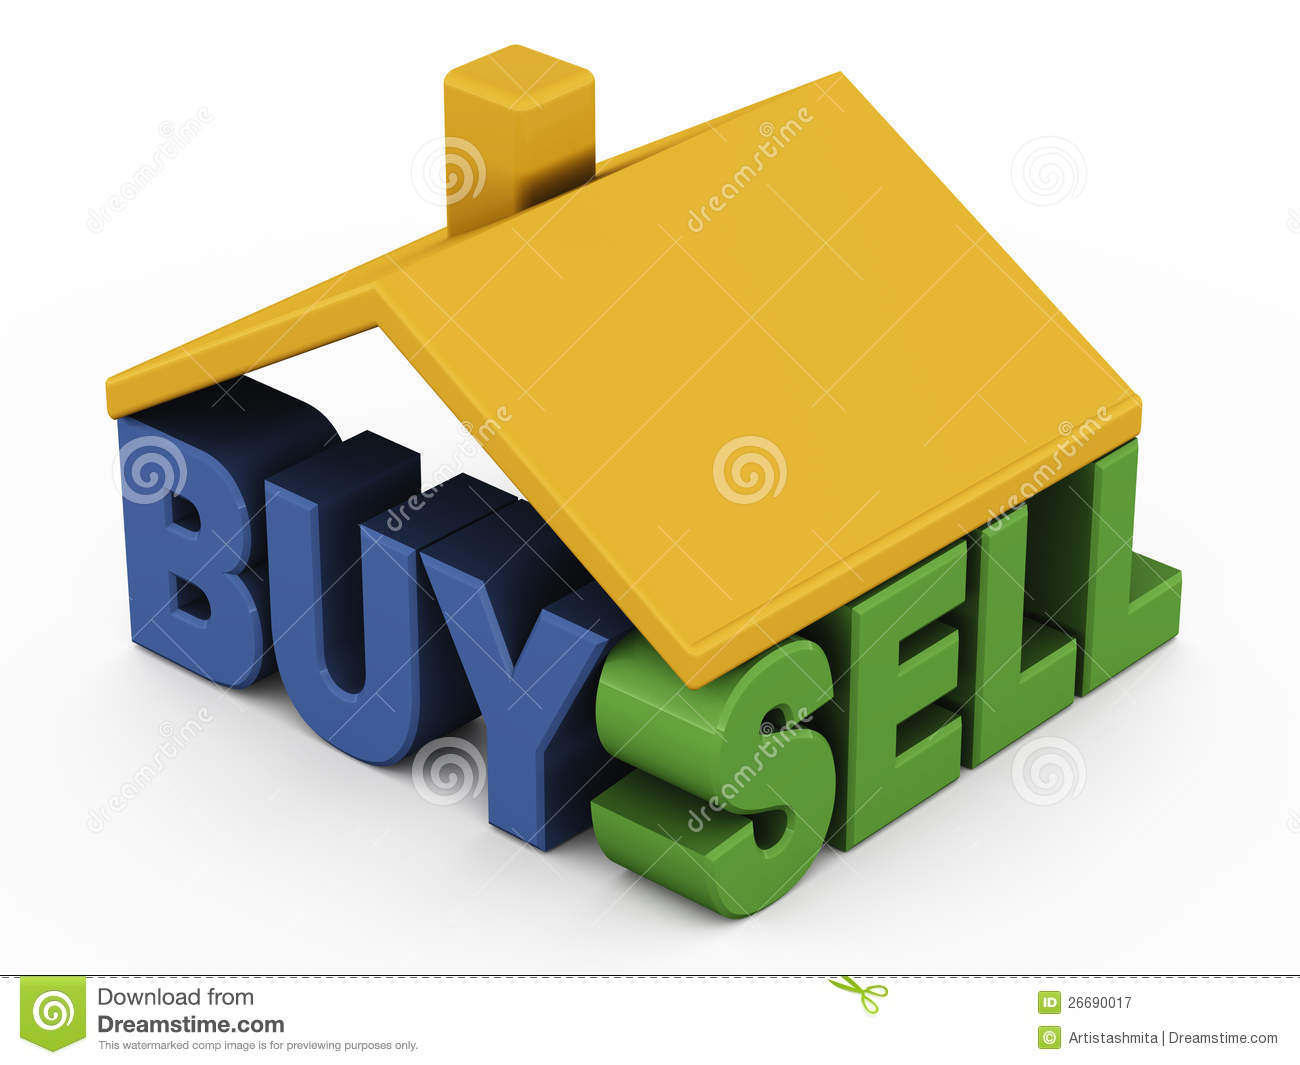 ... property or real estate, with buy and sell text under roof of a house: www.dreamstime.com/royalty-free-stock-photography-buy-sell-home...